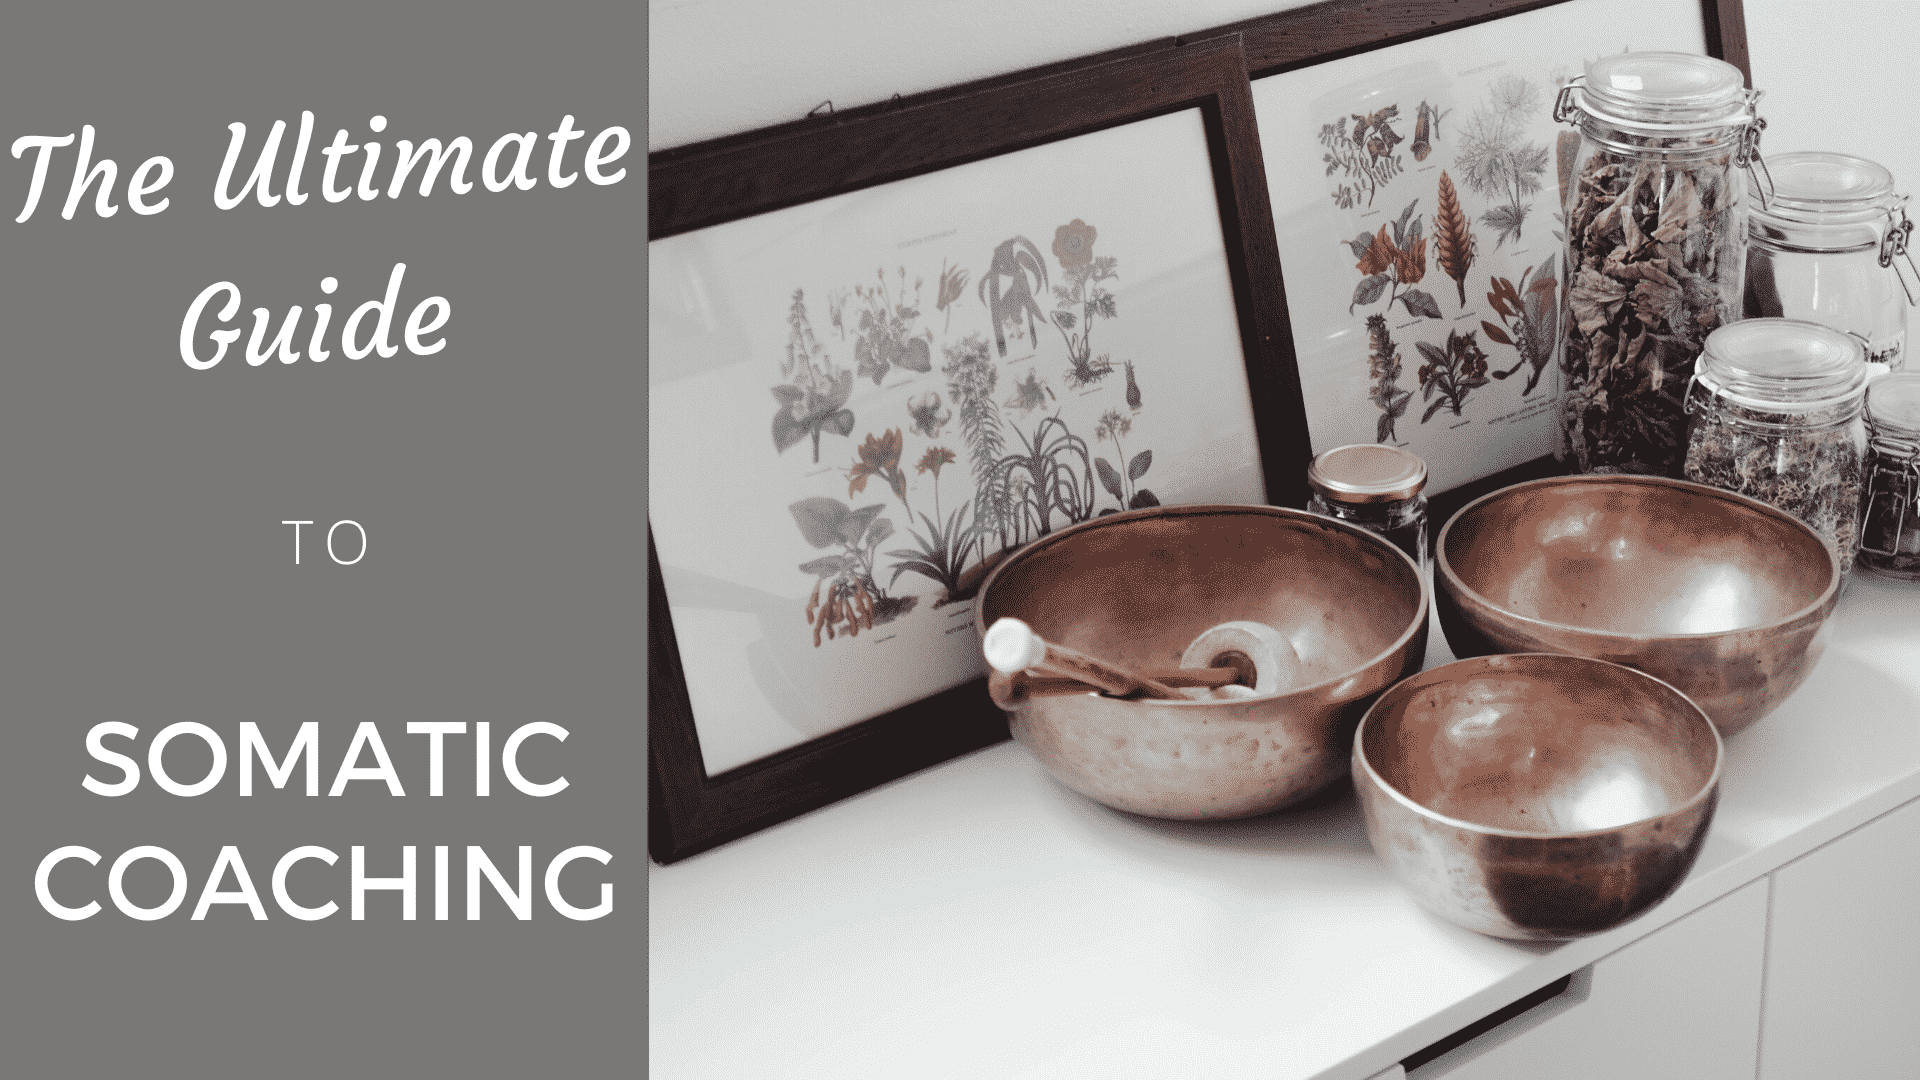 The Ultimate Guide to Somatic Coaching (2020) somatic coaching